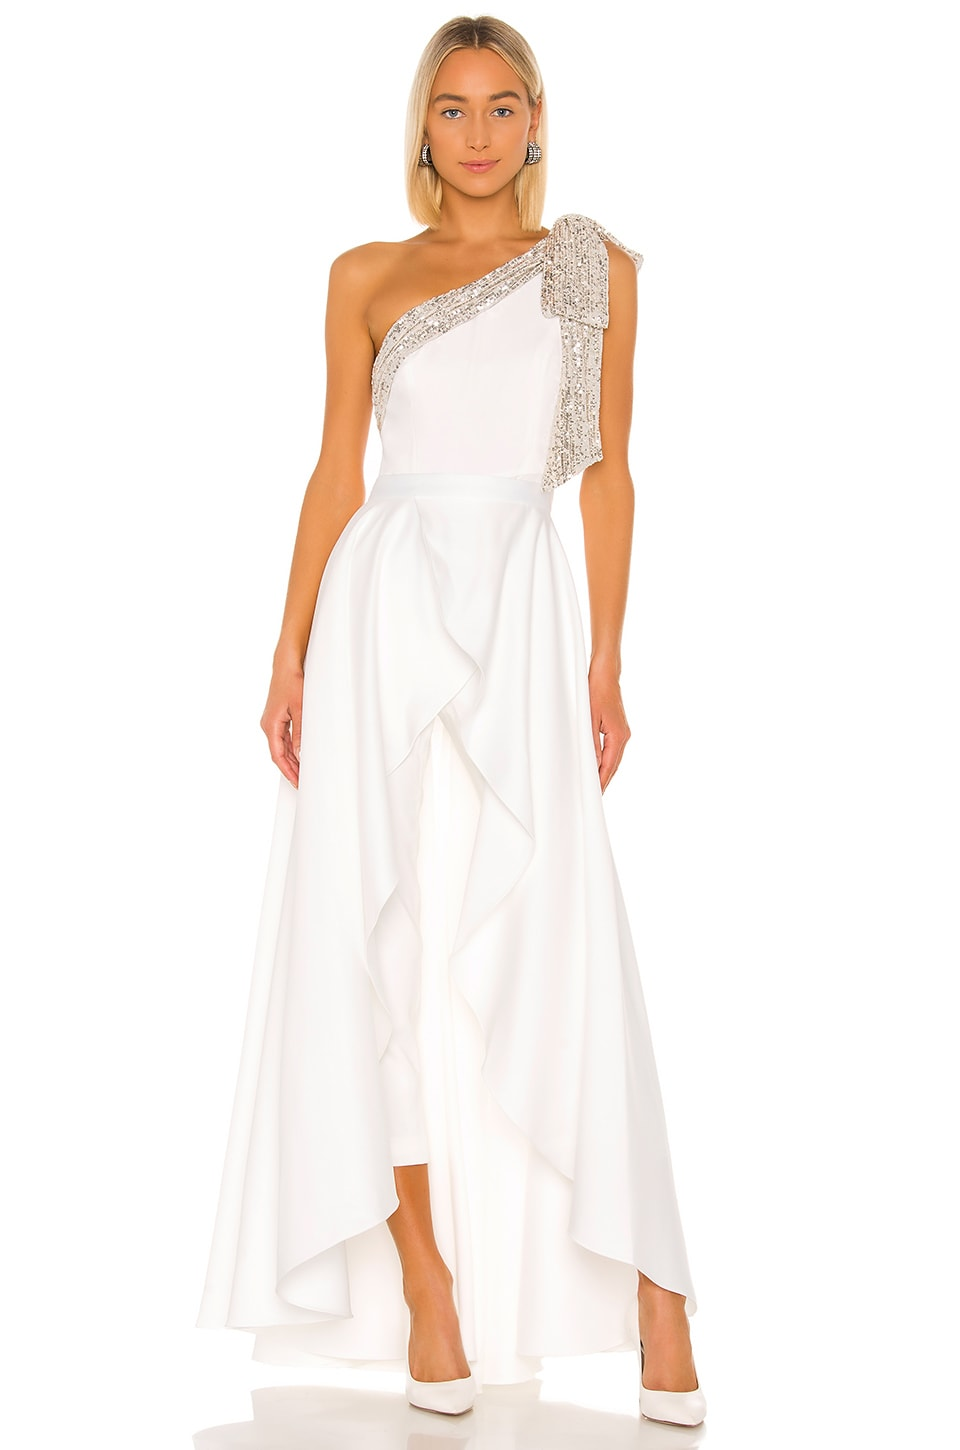 Jay Godfrey Gavin Jumpsuit With Satin Overskirt in Light Ivory, Silver & Diamond White